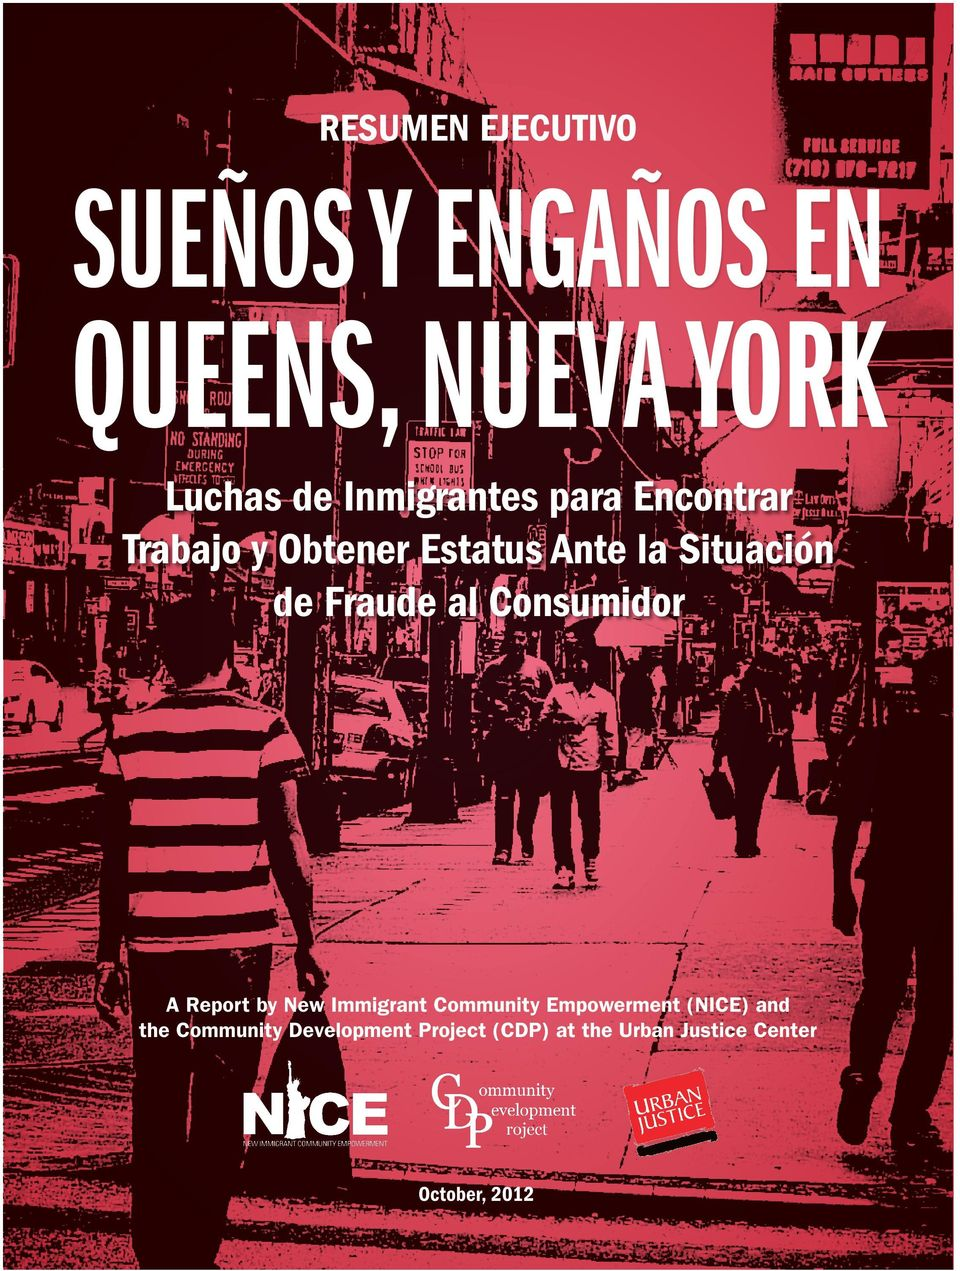 Fraude al Consumidor A Report by New Immigrant Community Empowerment (NICE)